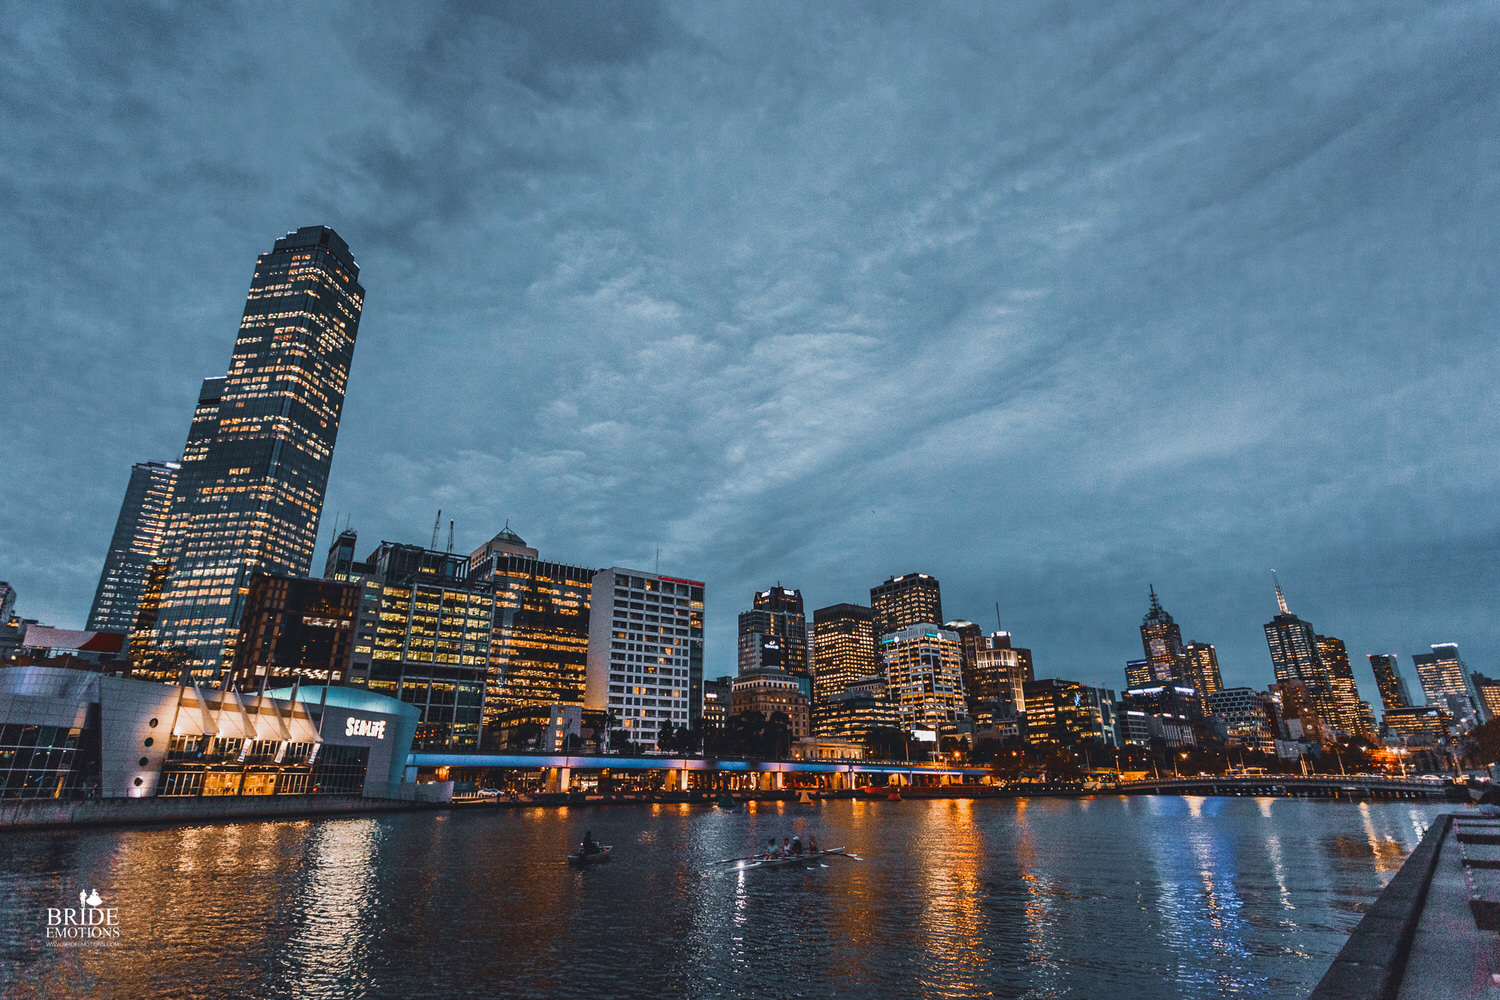 View from Yarra River Promenade